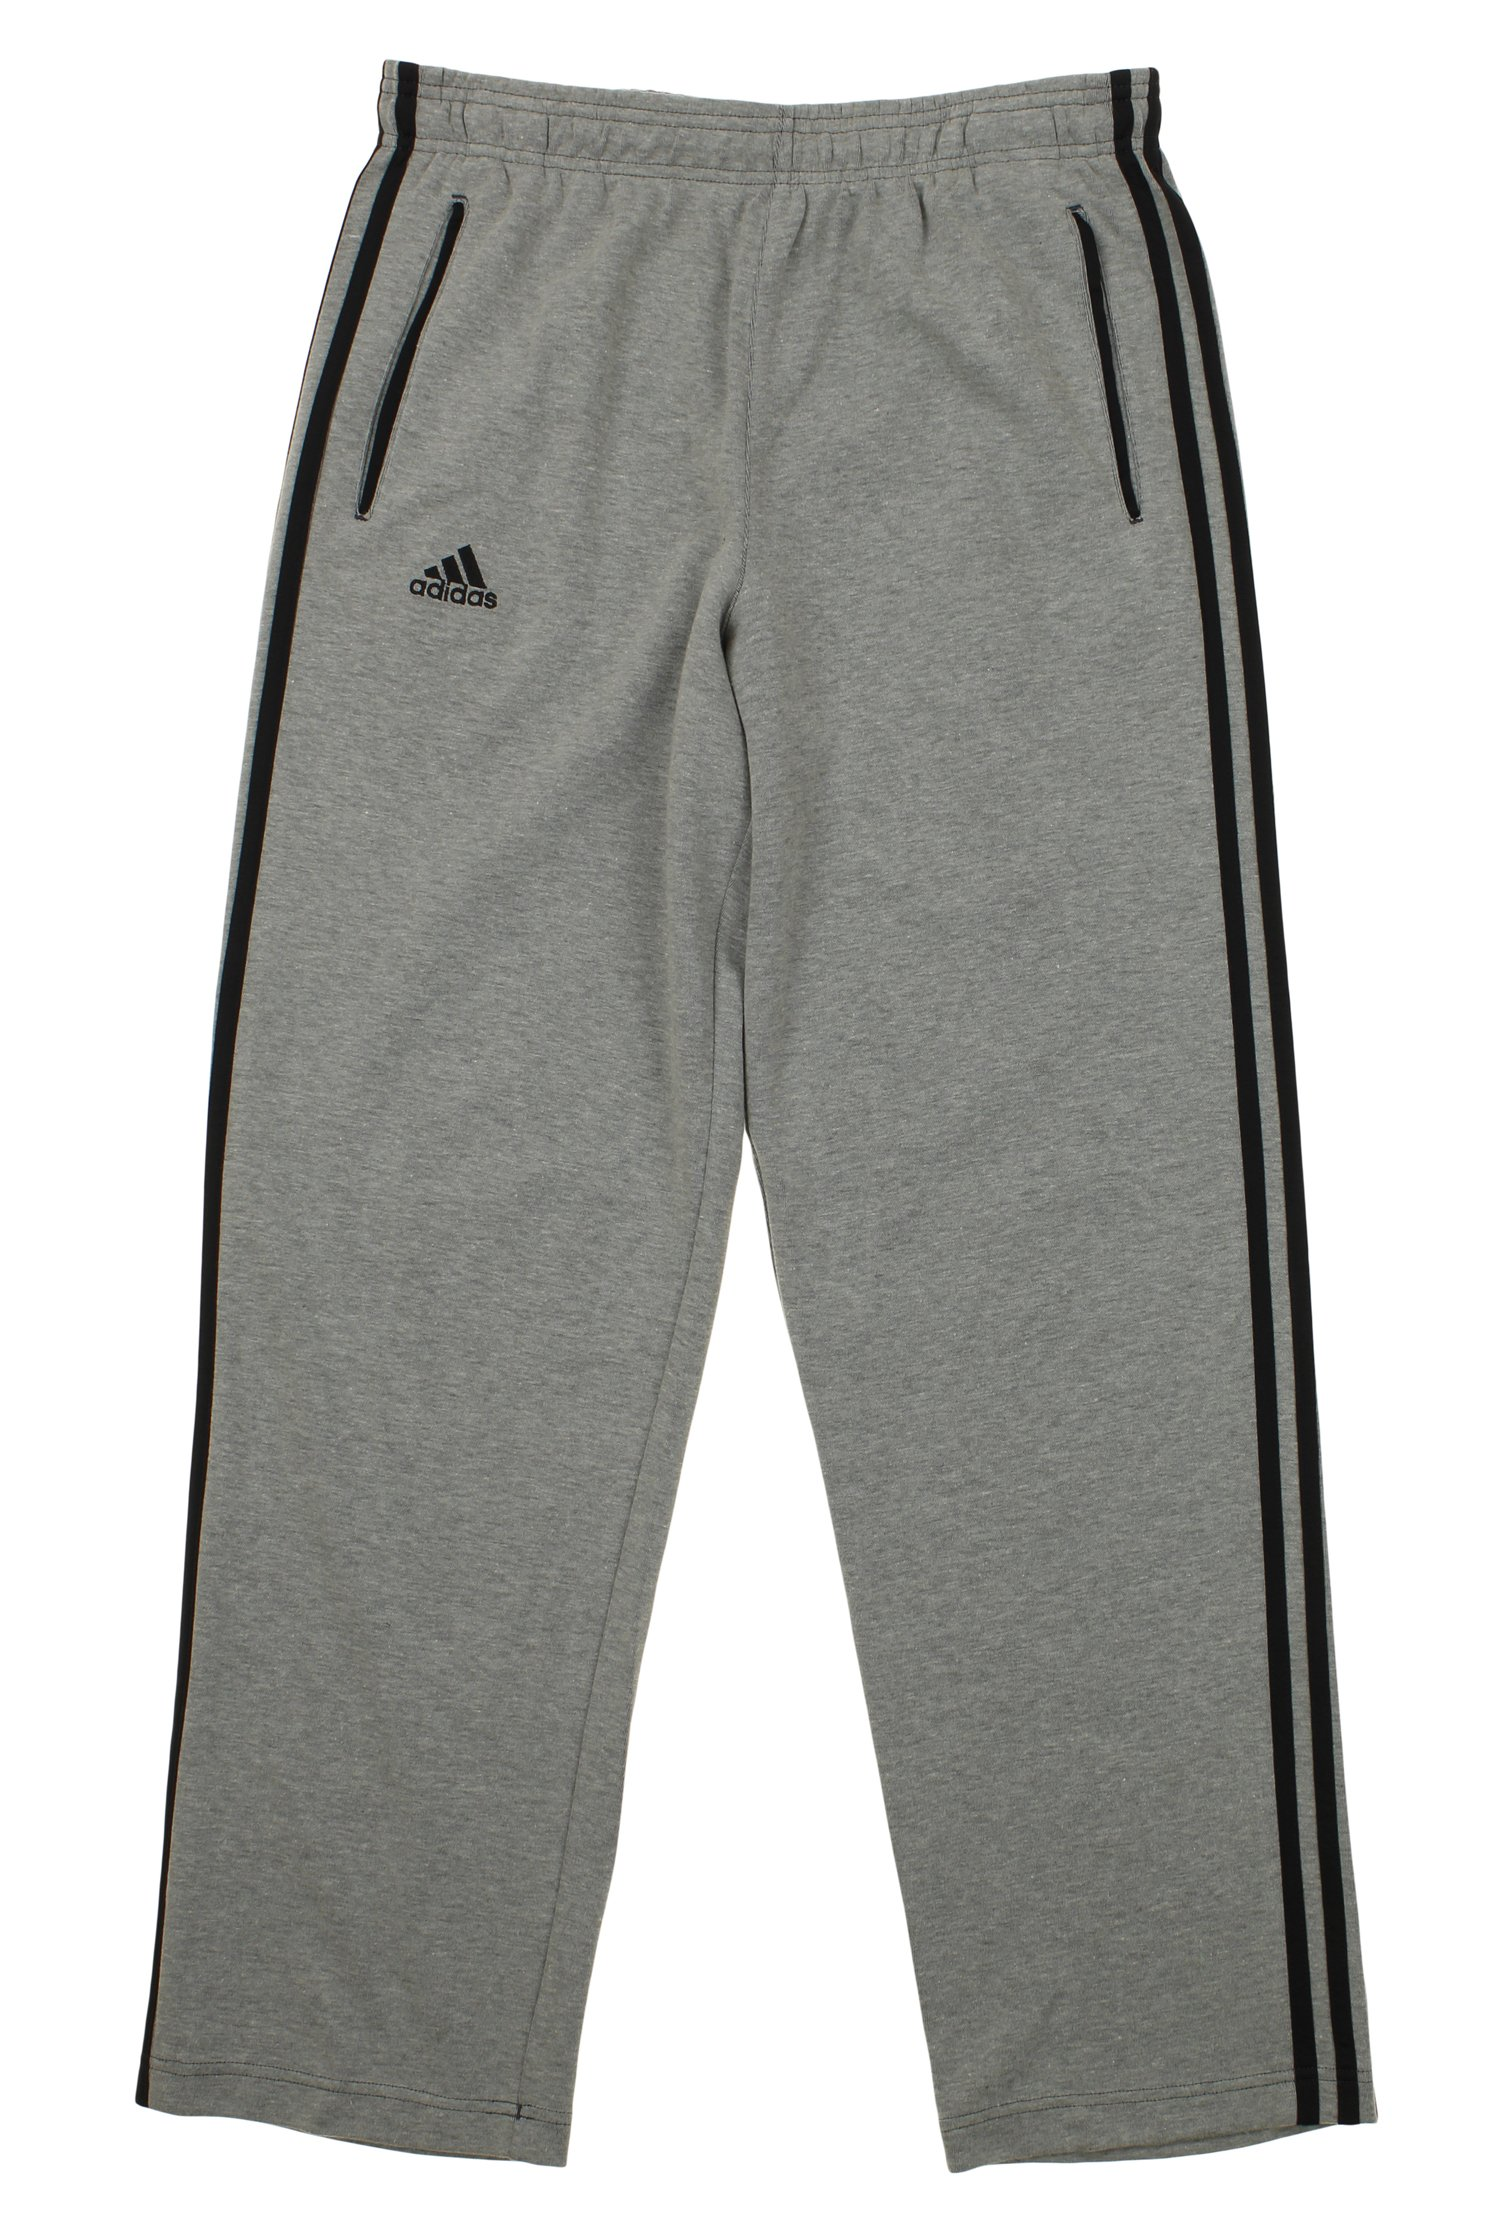 adidas ESSENTIALS MEN/'S CONDIVO 16 3 STRIPE TRACK PANTS BLACK GREY WHITE NAVY